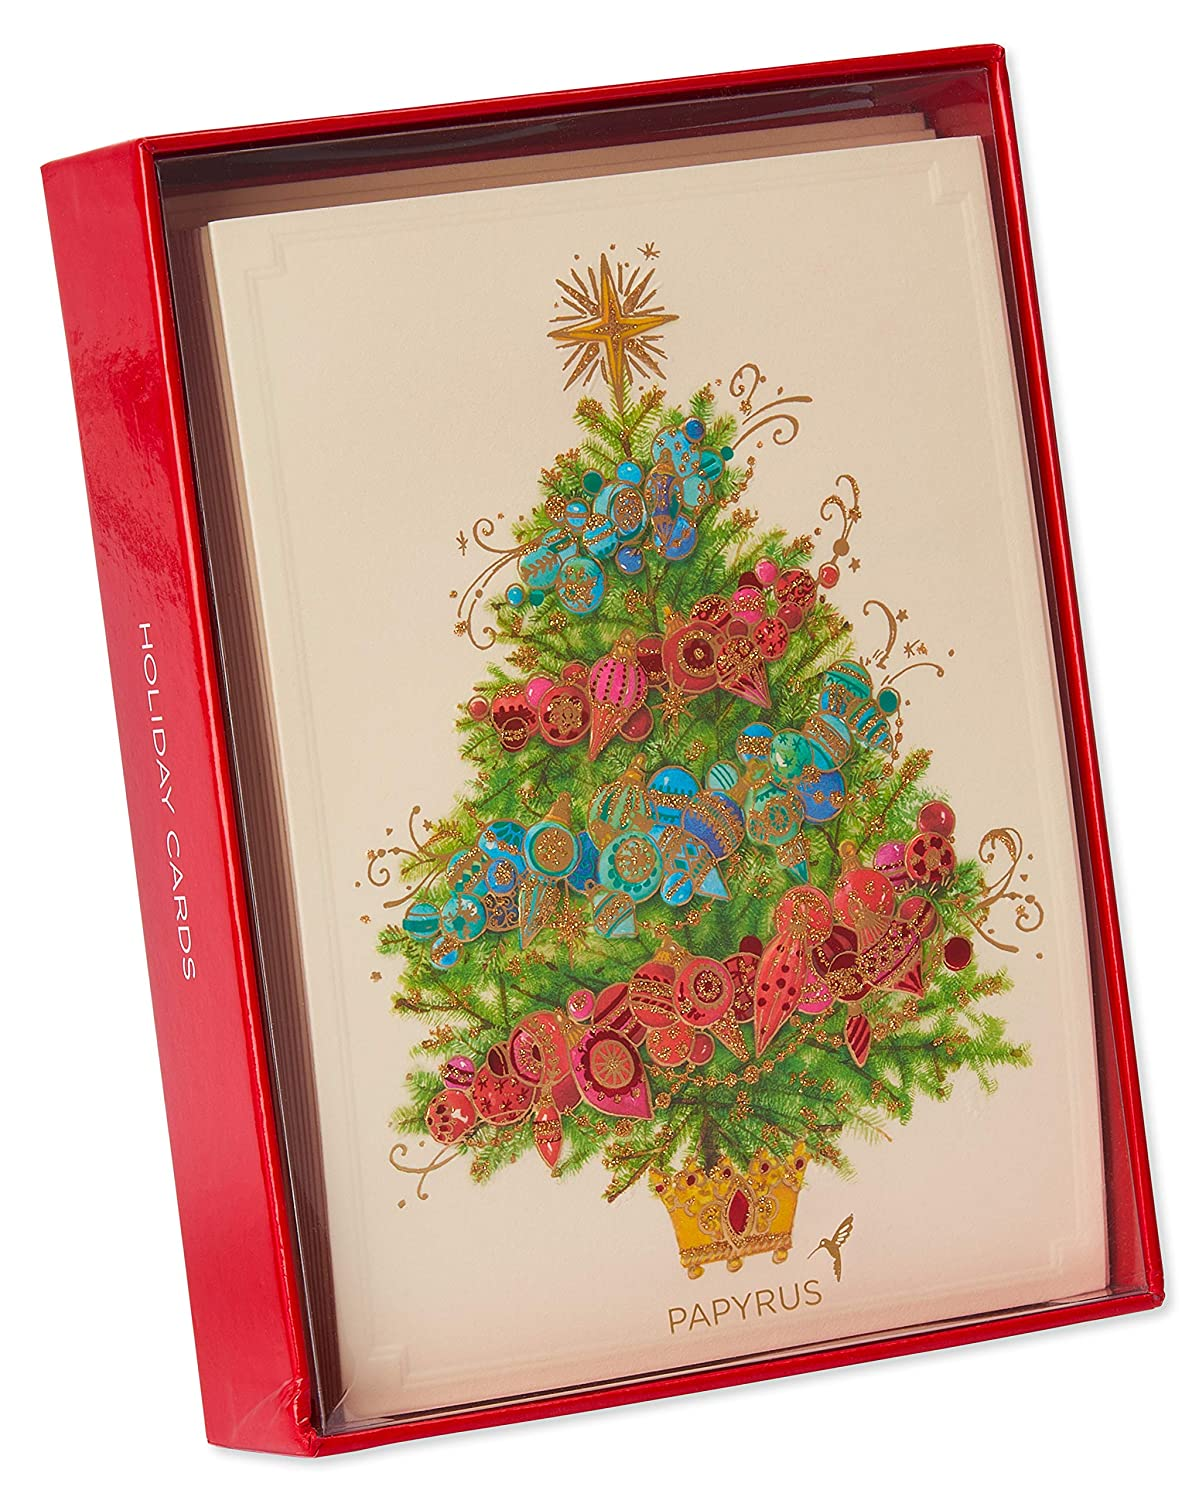 Papyrus Christmas Cards.Papyrus Christmas Cards Boxed Glittered Christmas Tree With Ornaments 12 Count